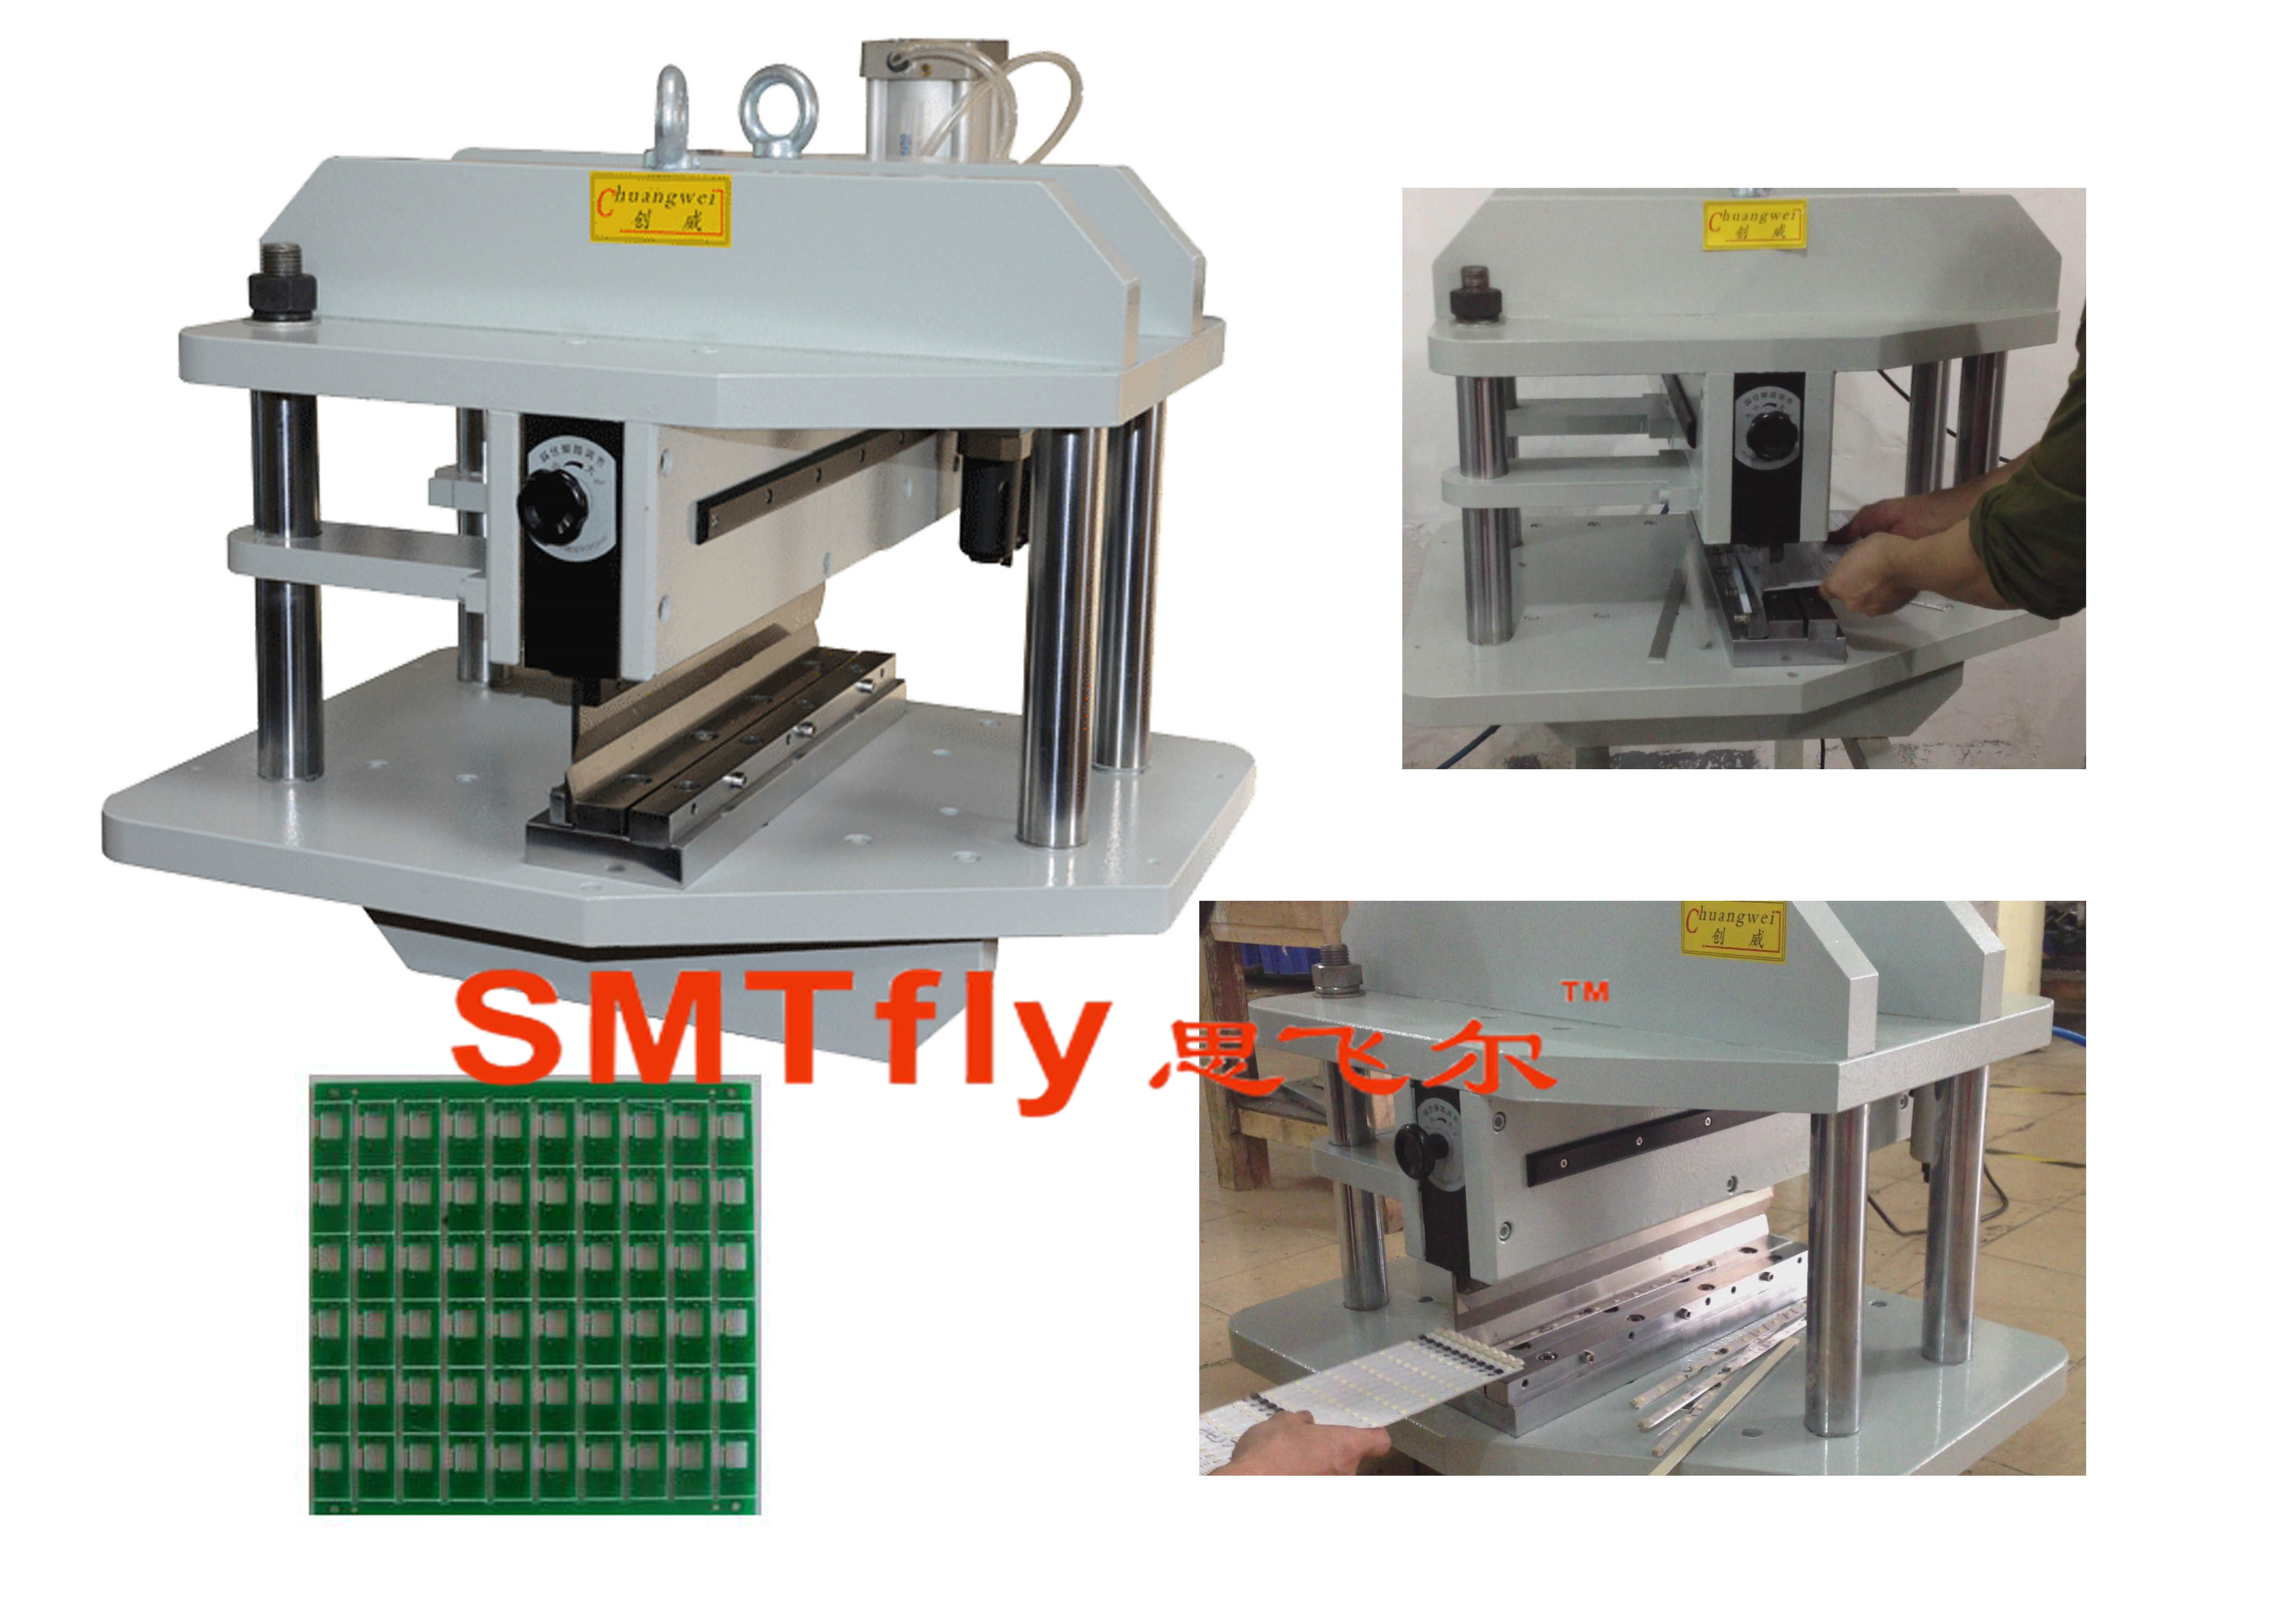 PCB Depaneling Machine Price,SMTfly-450C